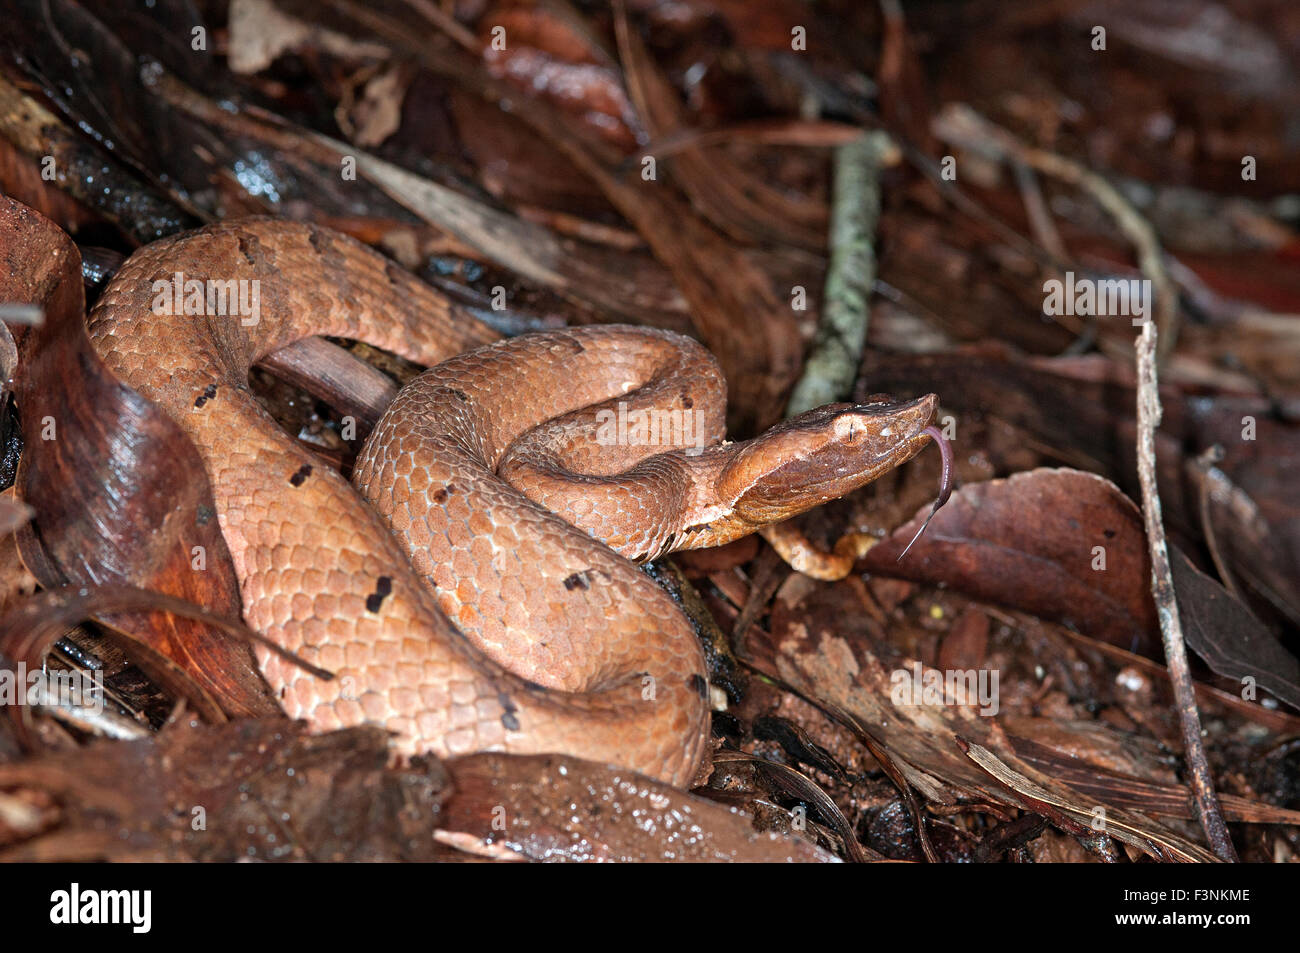 The image of Hump Nosed Pit Viper ( Hypnale hypnale ) was shot in Goa, India - Stock Image